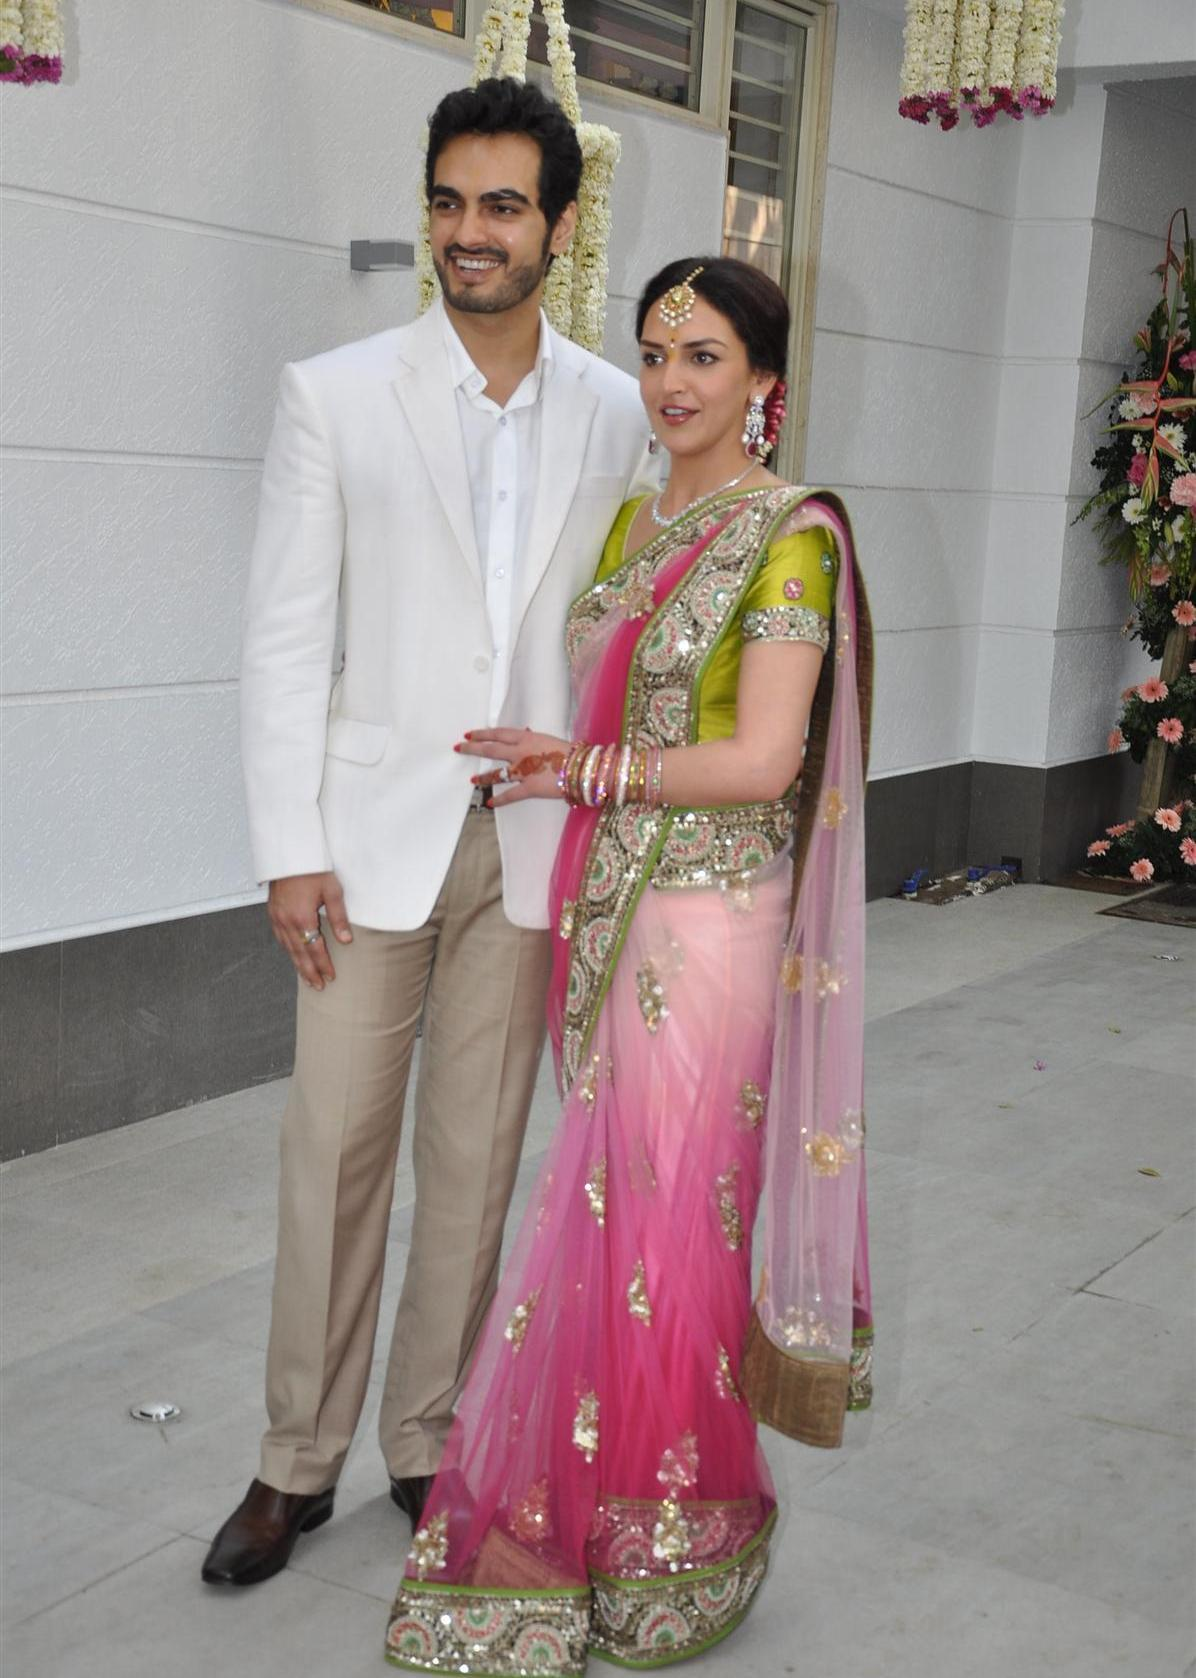 Esha Deol with fiance Bharat Takhtani at their engagement